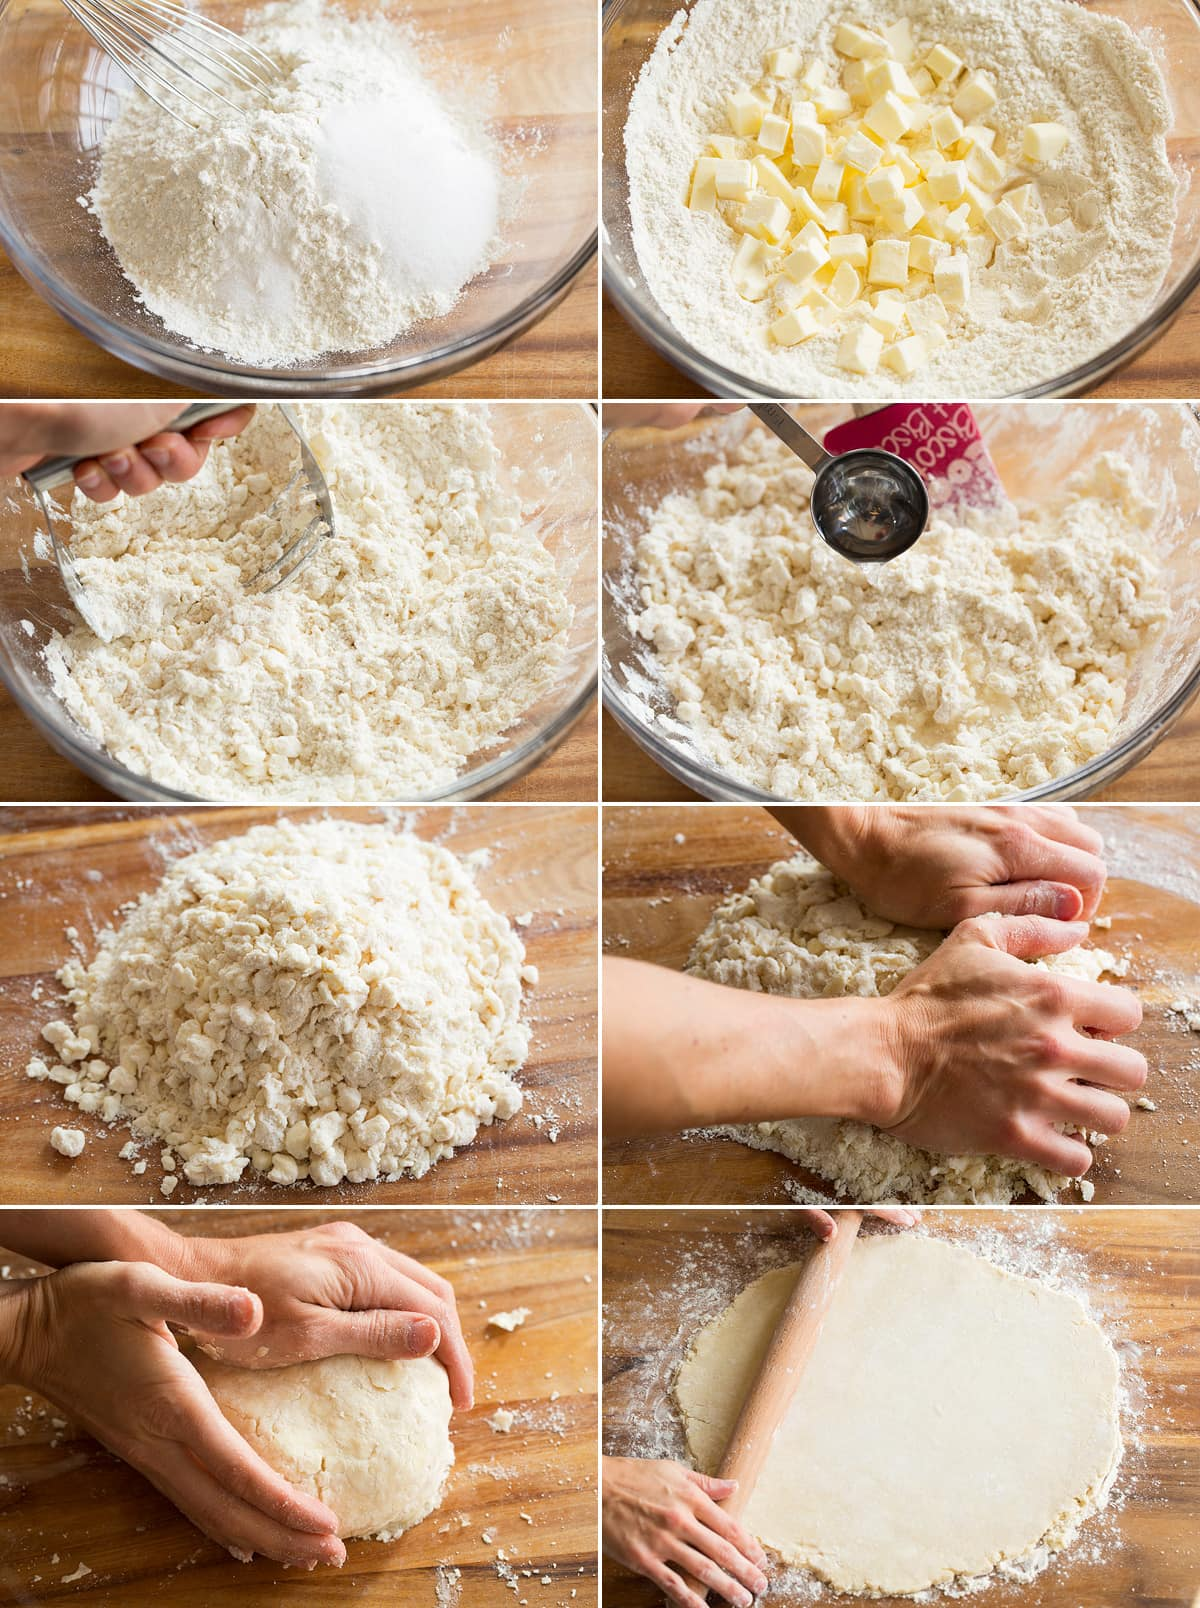 Collage of eight images showing steps of making a galette crust.